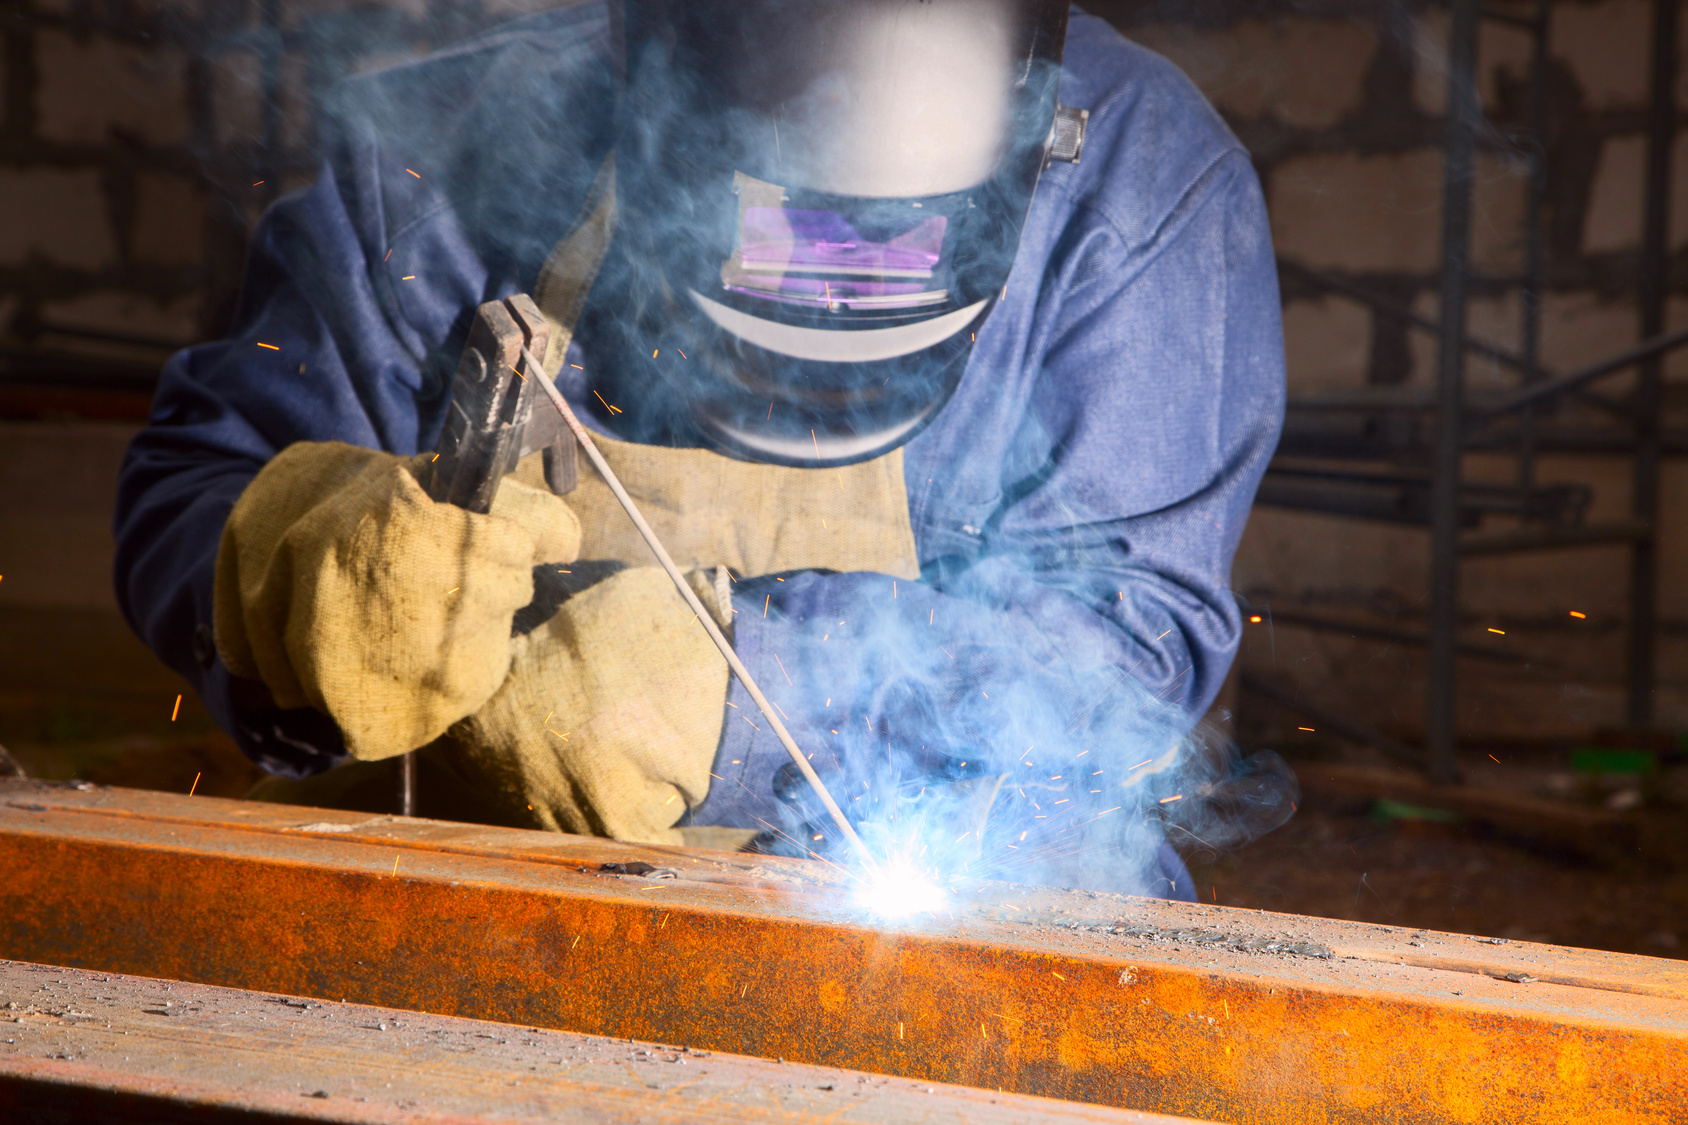 Worker weld metal at a construction site